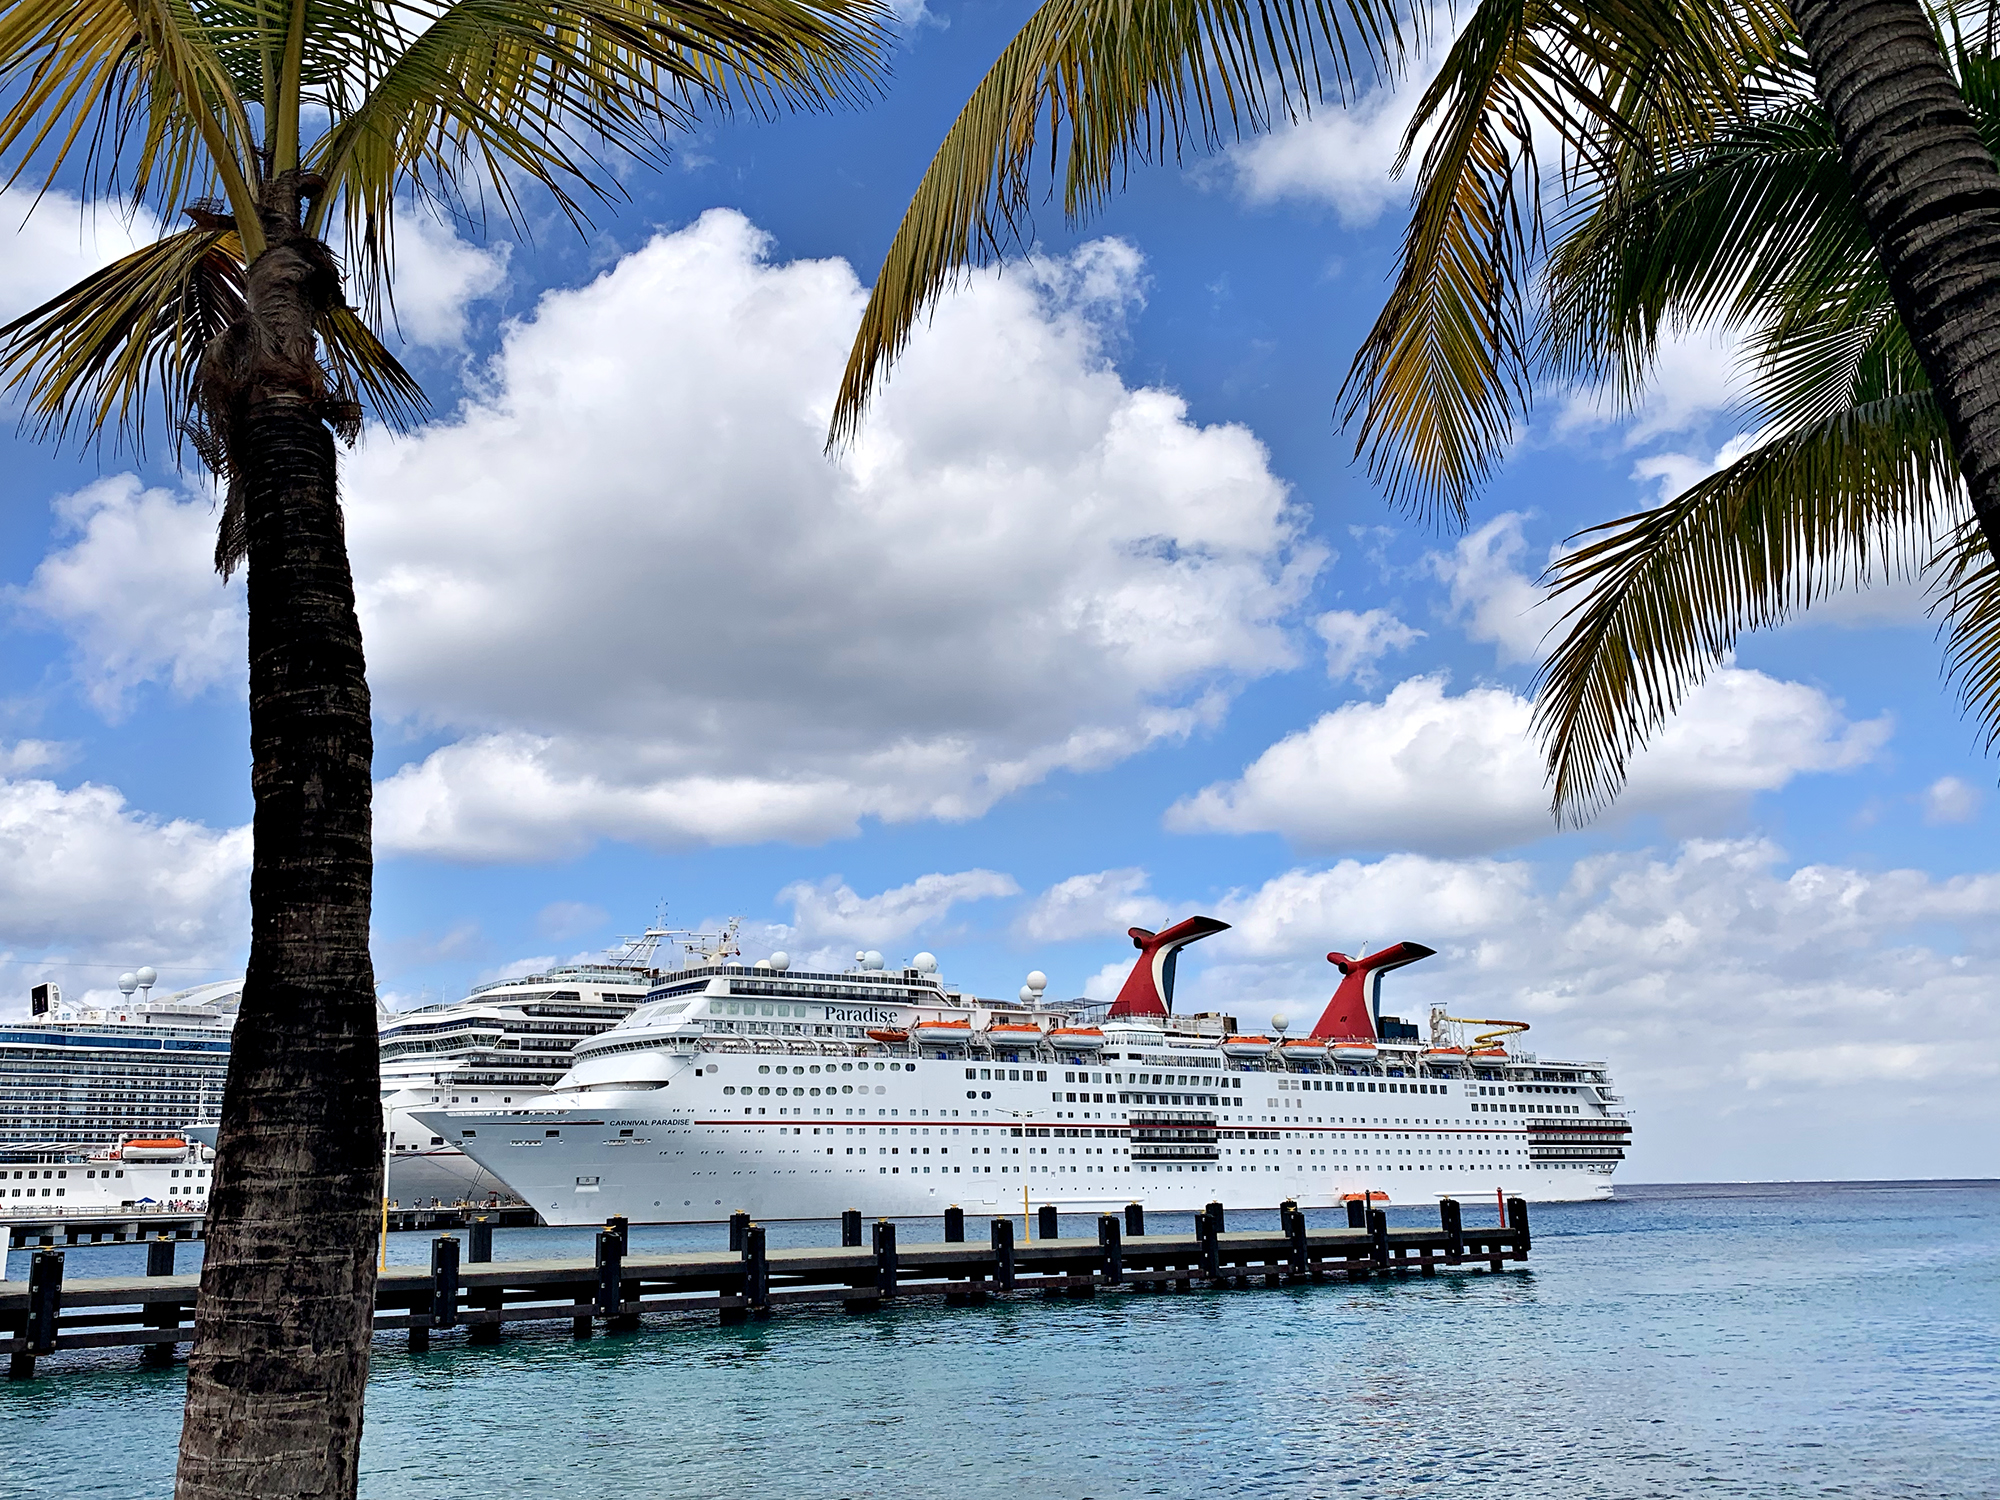 Carnival Paradise cruise ship docked in Cozumel, Mexico.